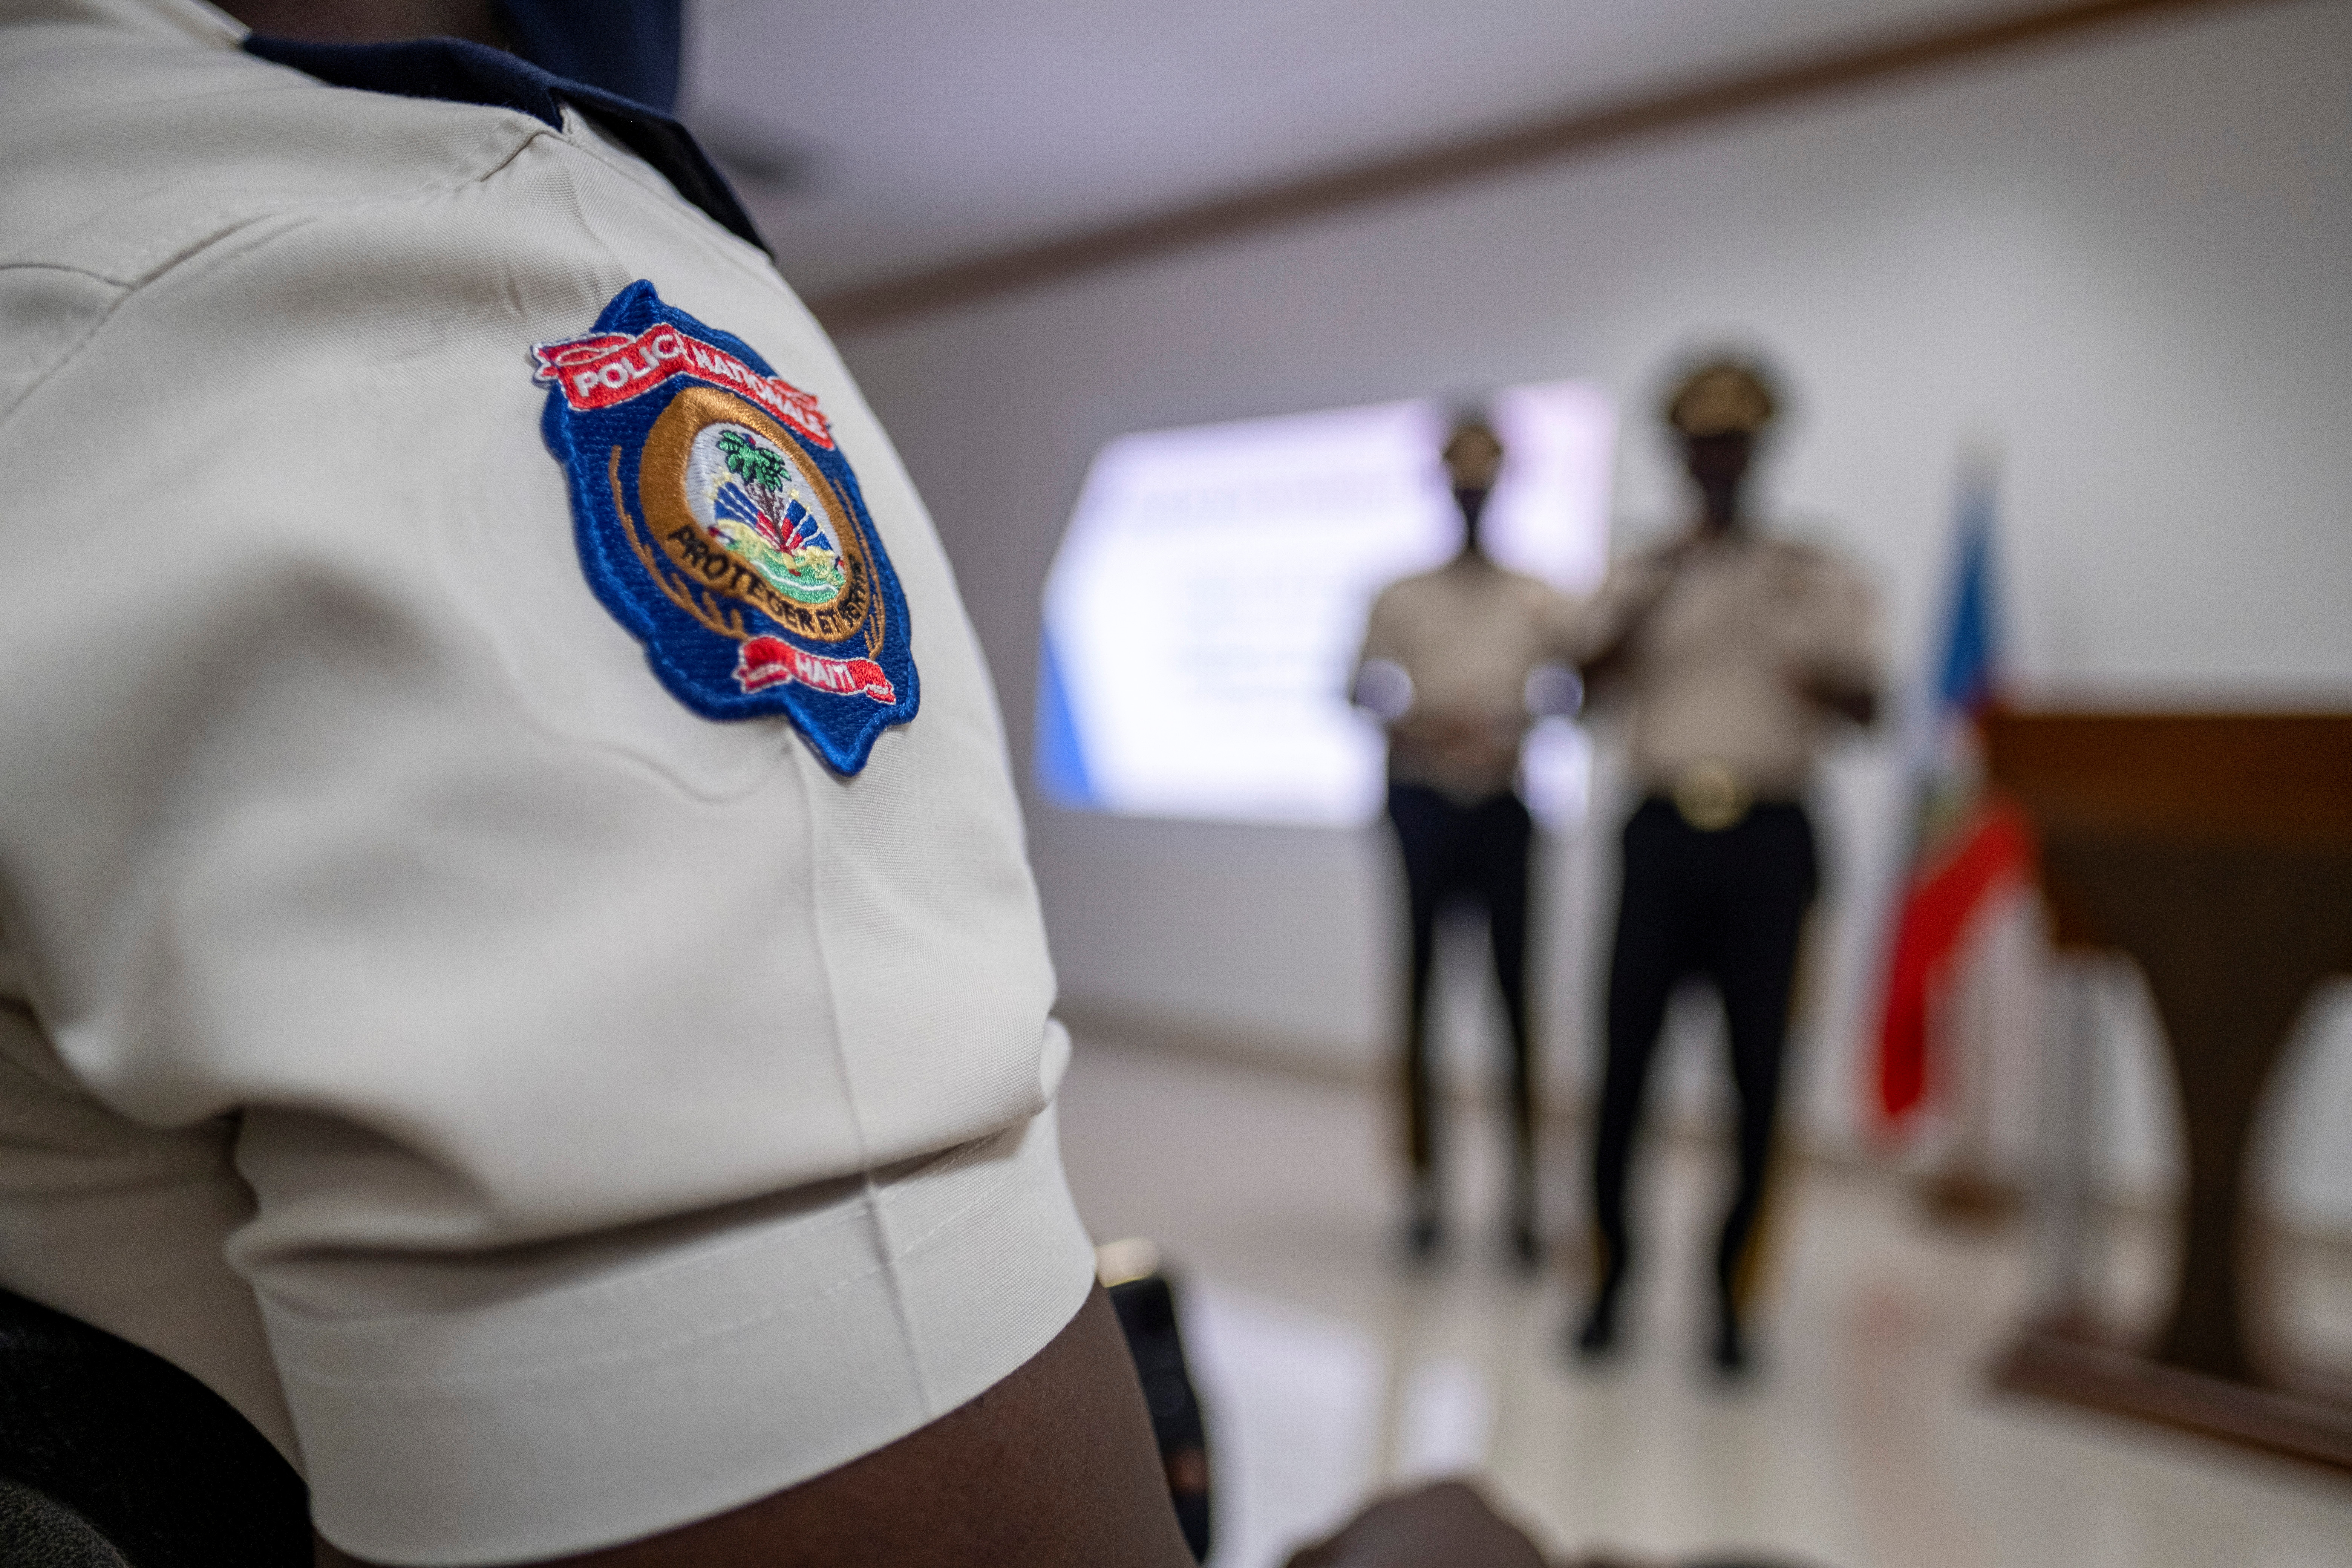 A Haitian National Police officer attends Haitian's Police Director General Leon Charles press conference in Port-au-Prince, Haiti July 15, 2021. REUTERS/Ricardo Arduengo